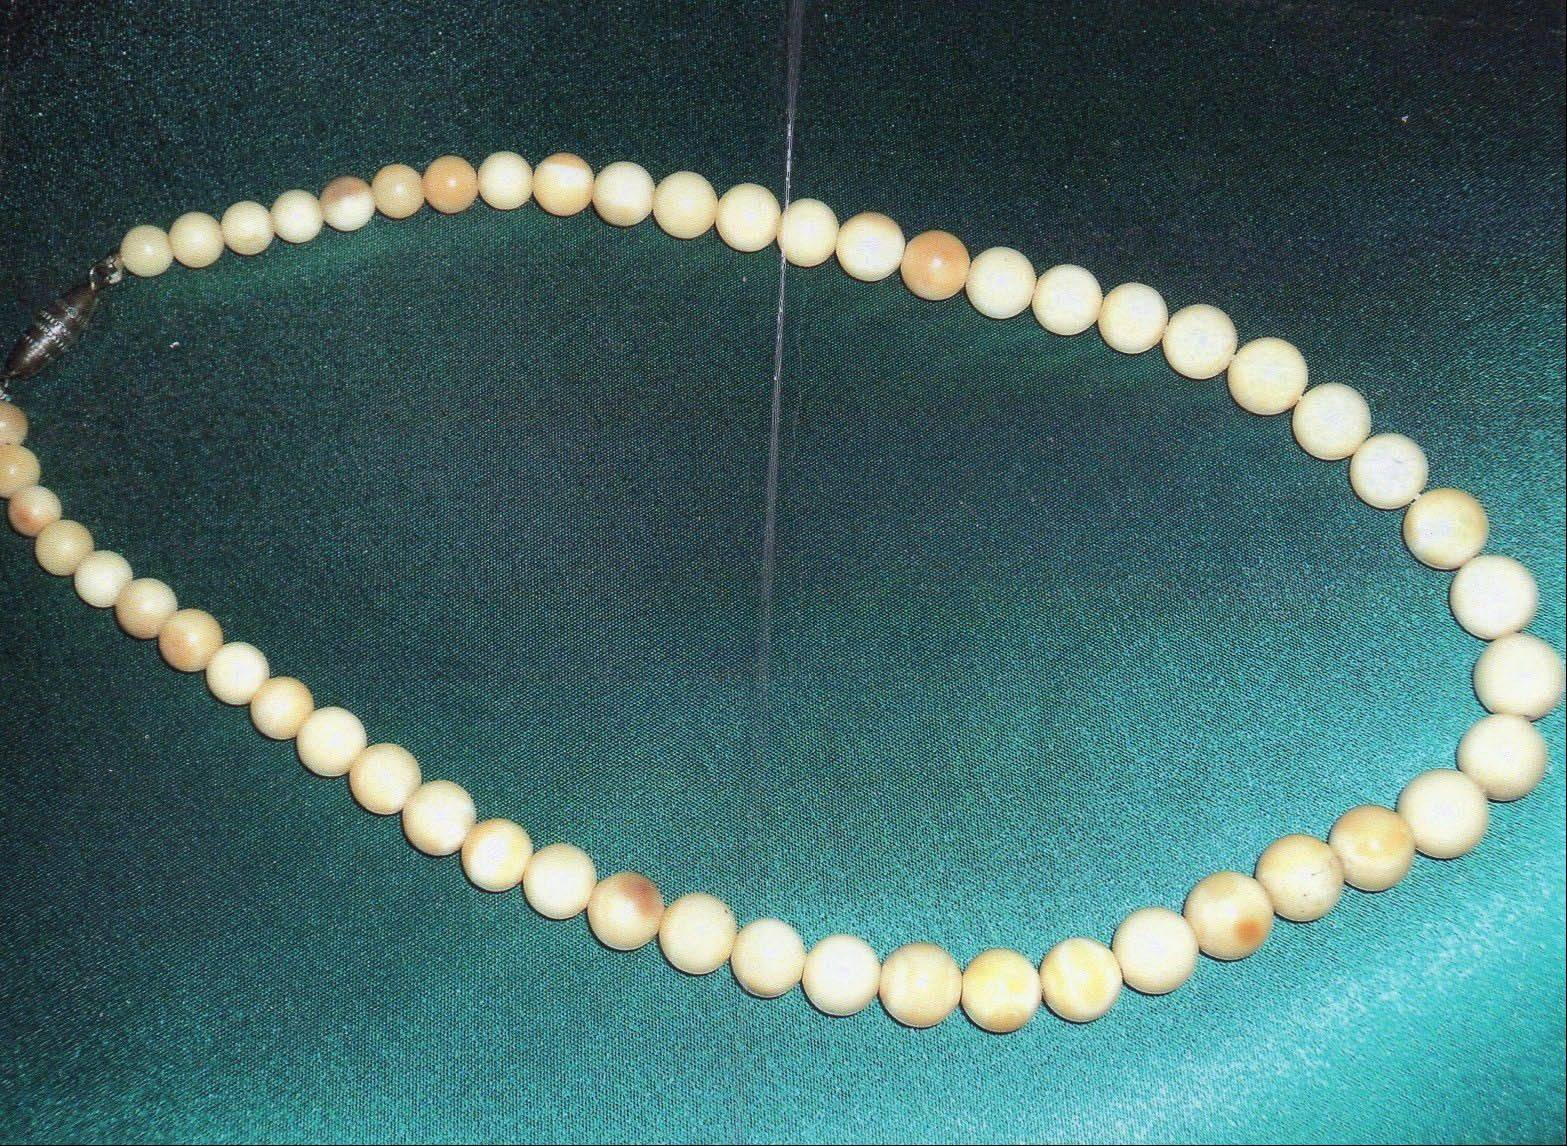 These beads look a bit like pearls, but are they?